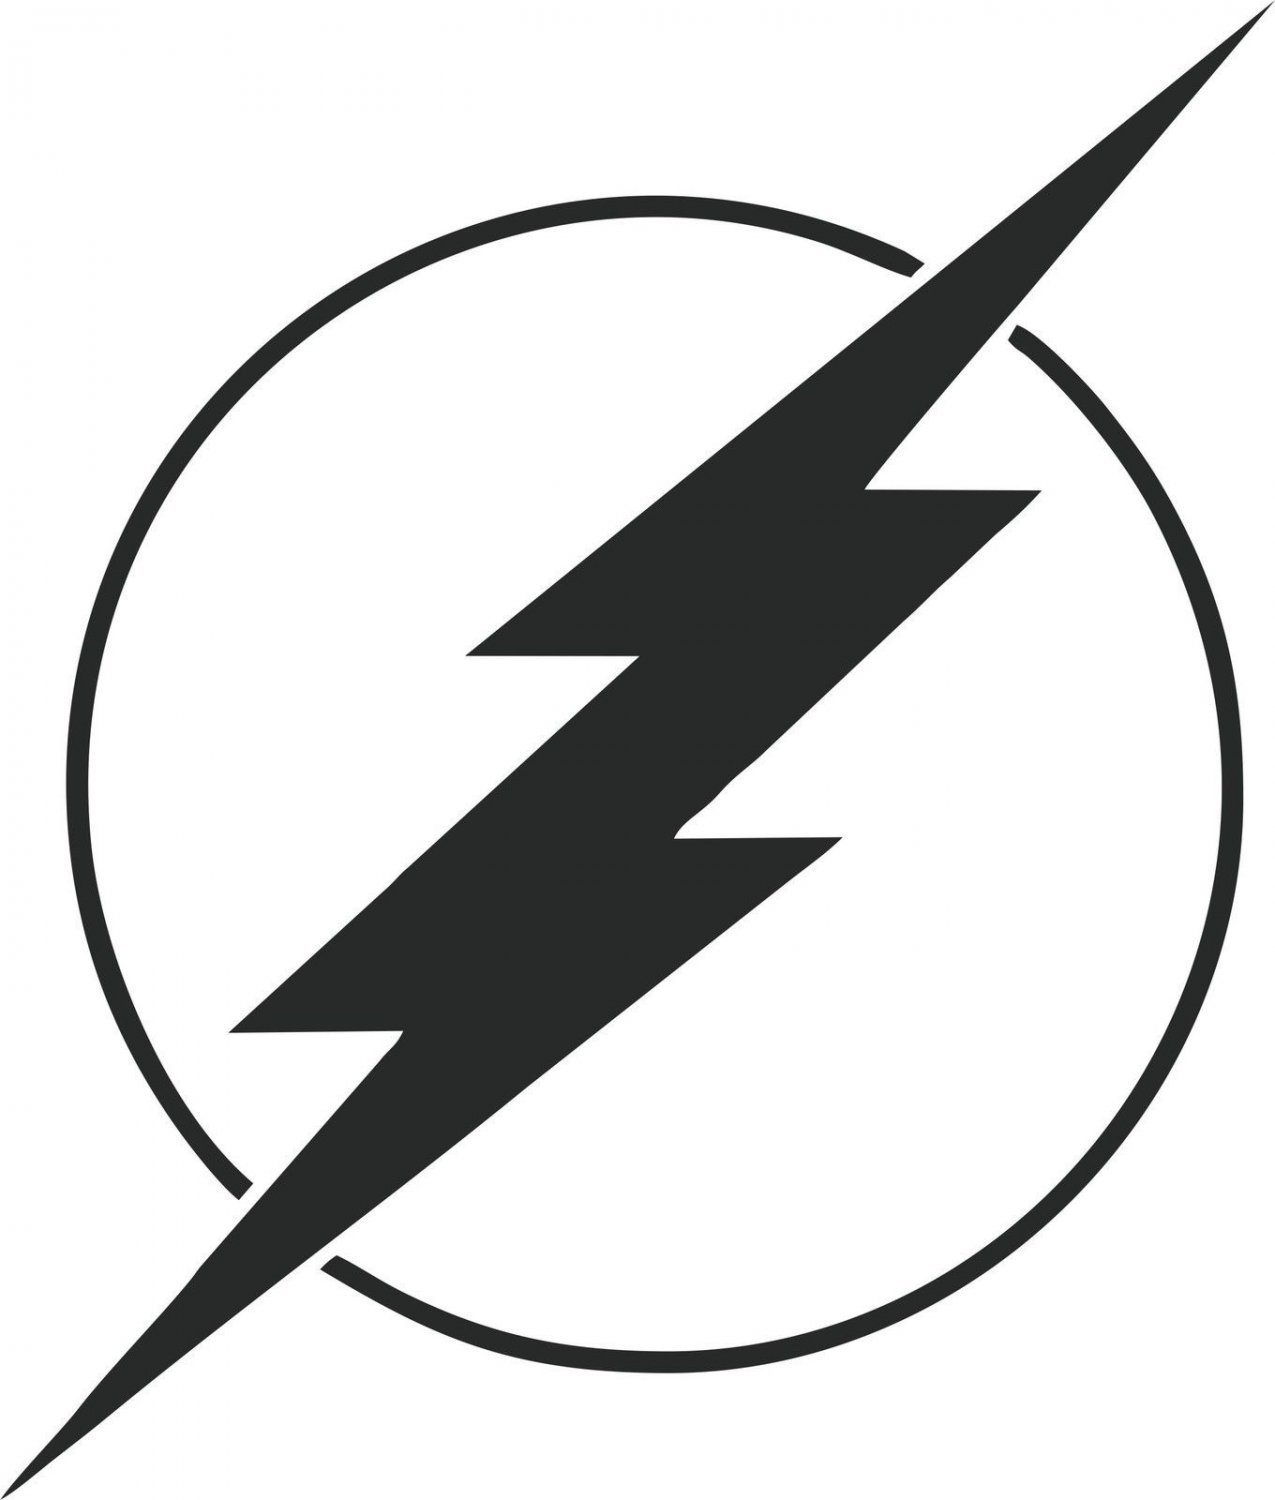 Free White Lightning Bolt Png, Download Free Clip Art, Free.